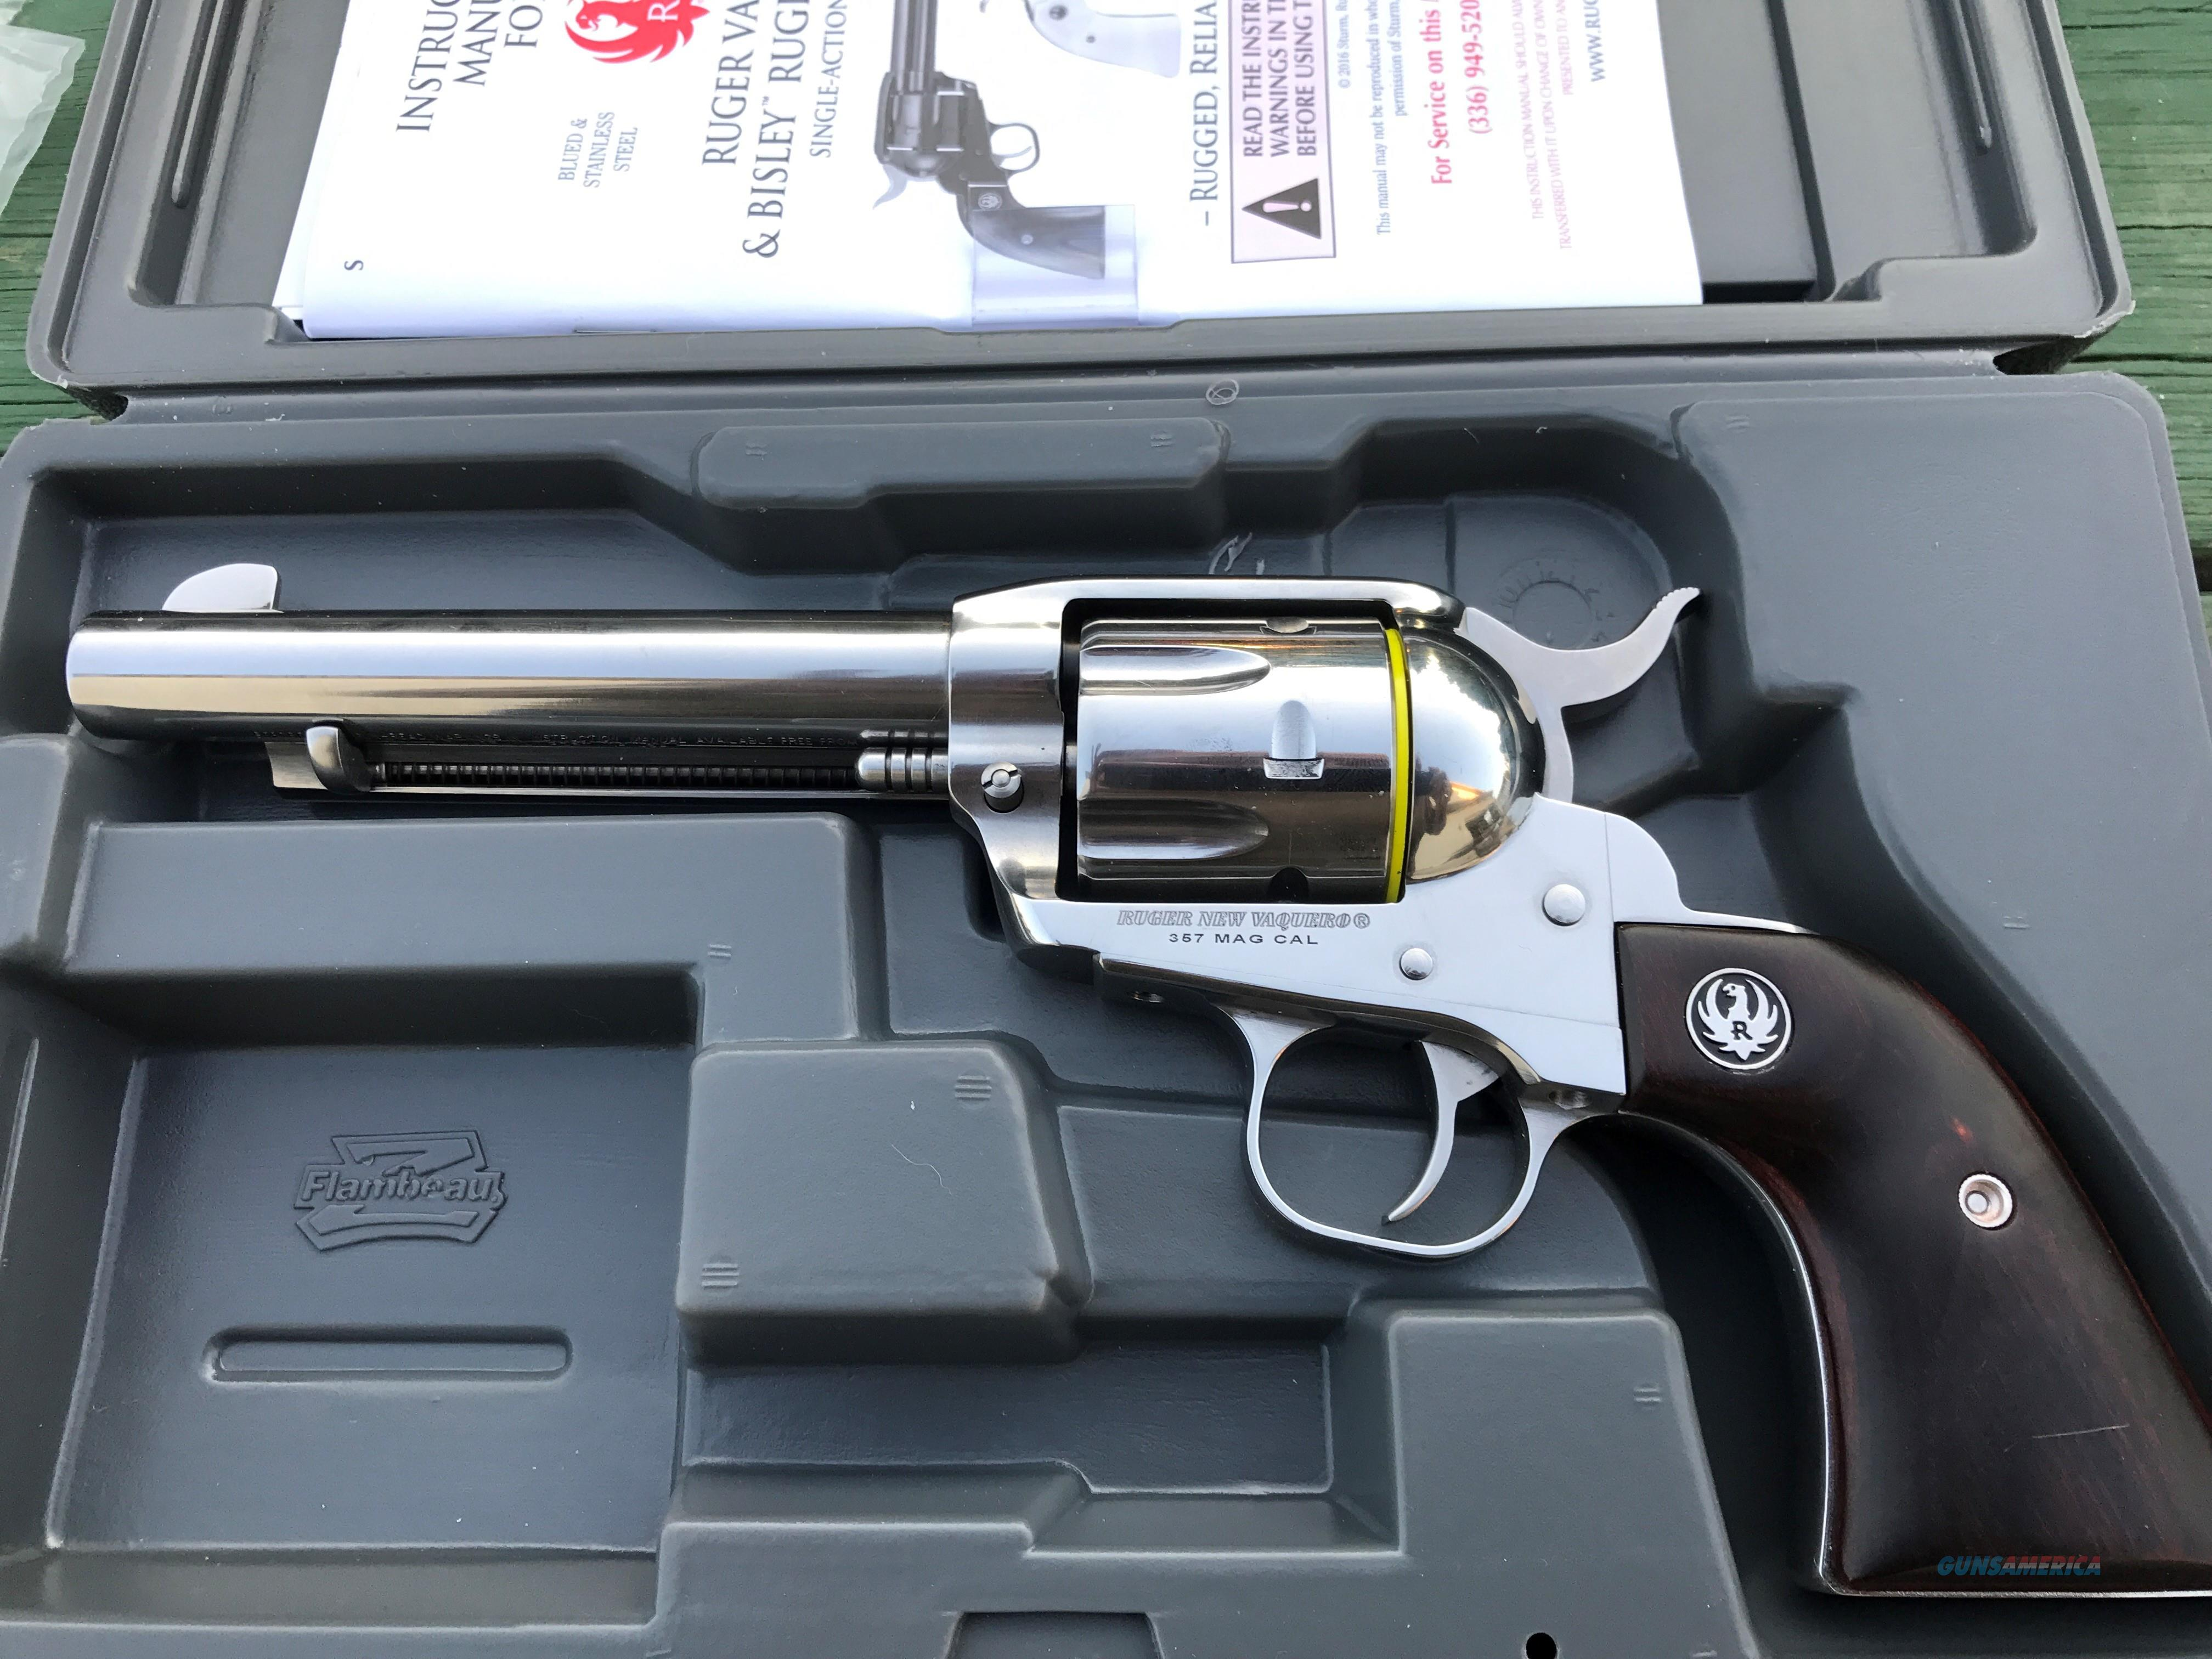 RUGER VAQUERO REDUCED Mag Bright Stainless  Guns > Pistols > Ruger Single Action Revolvers > Cowboy Action